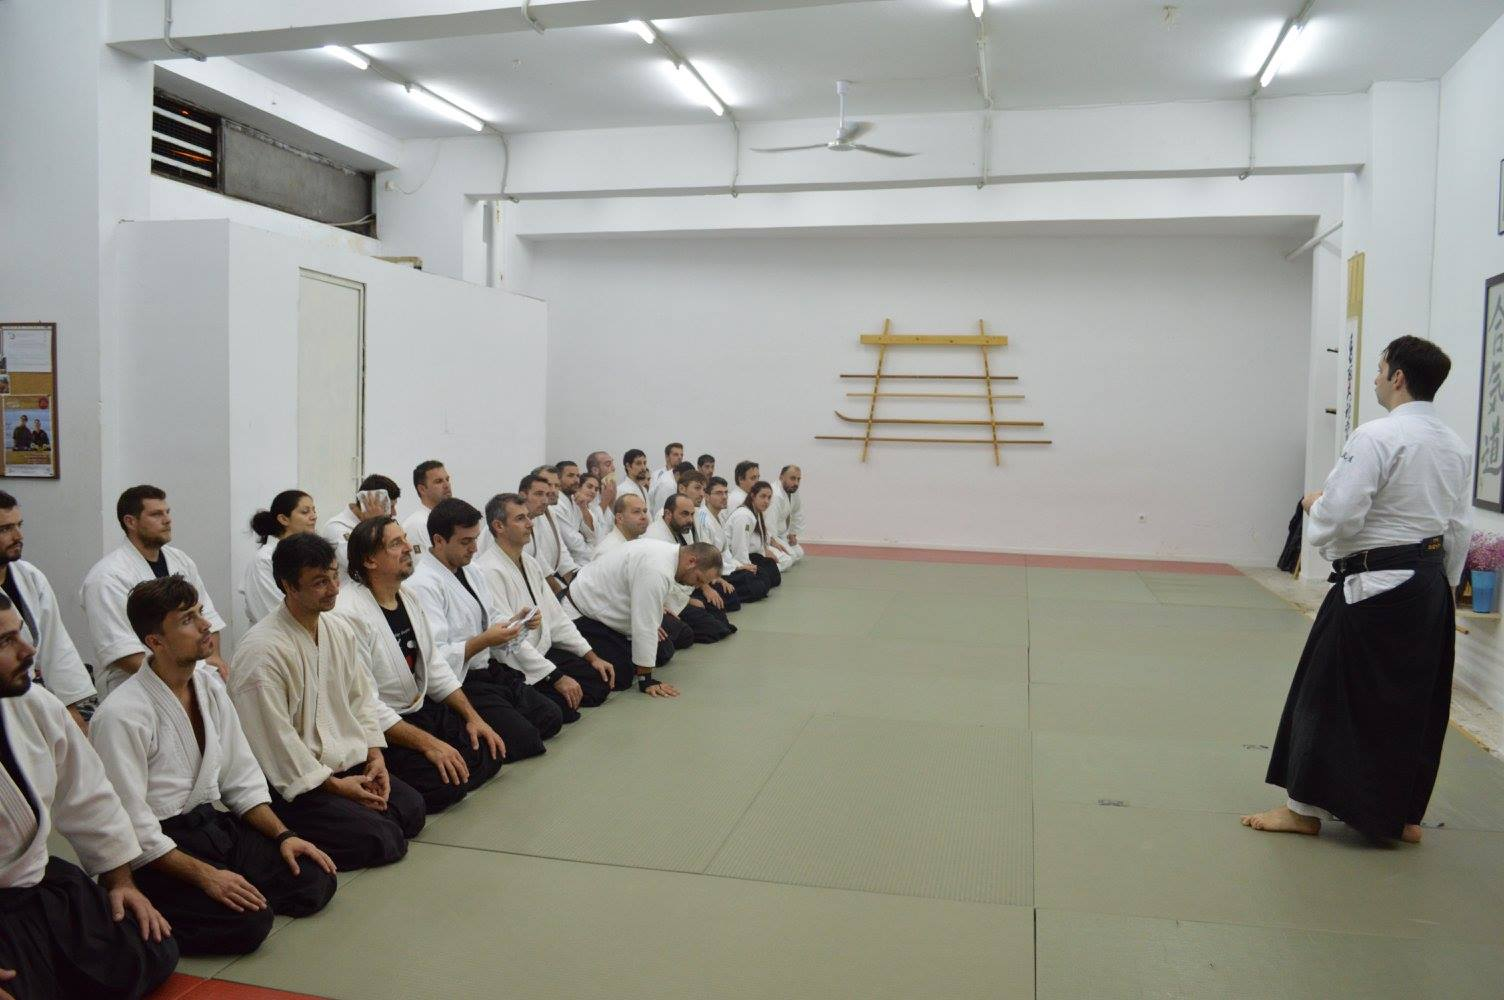 abc common aikido practice110